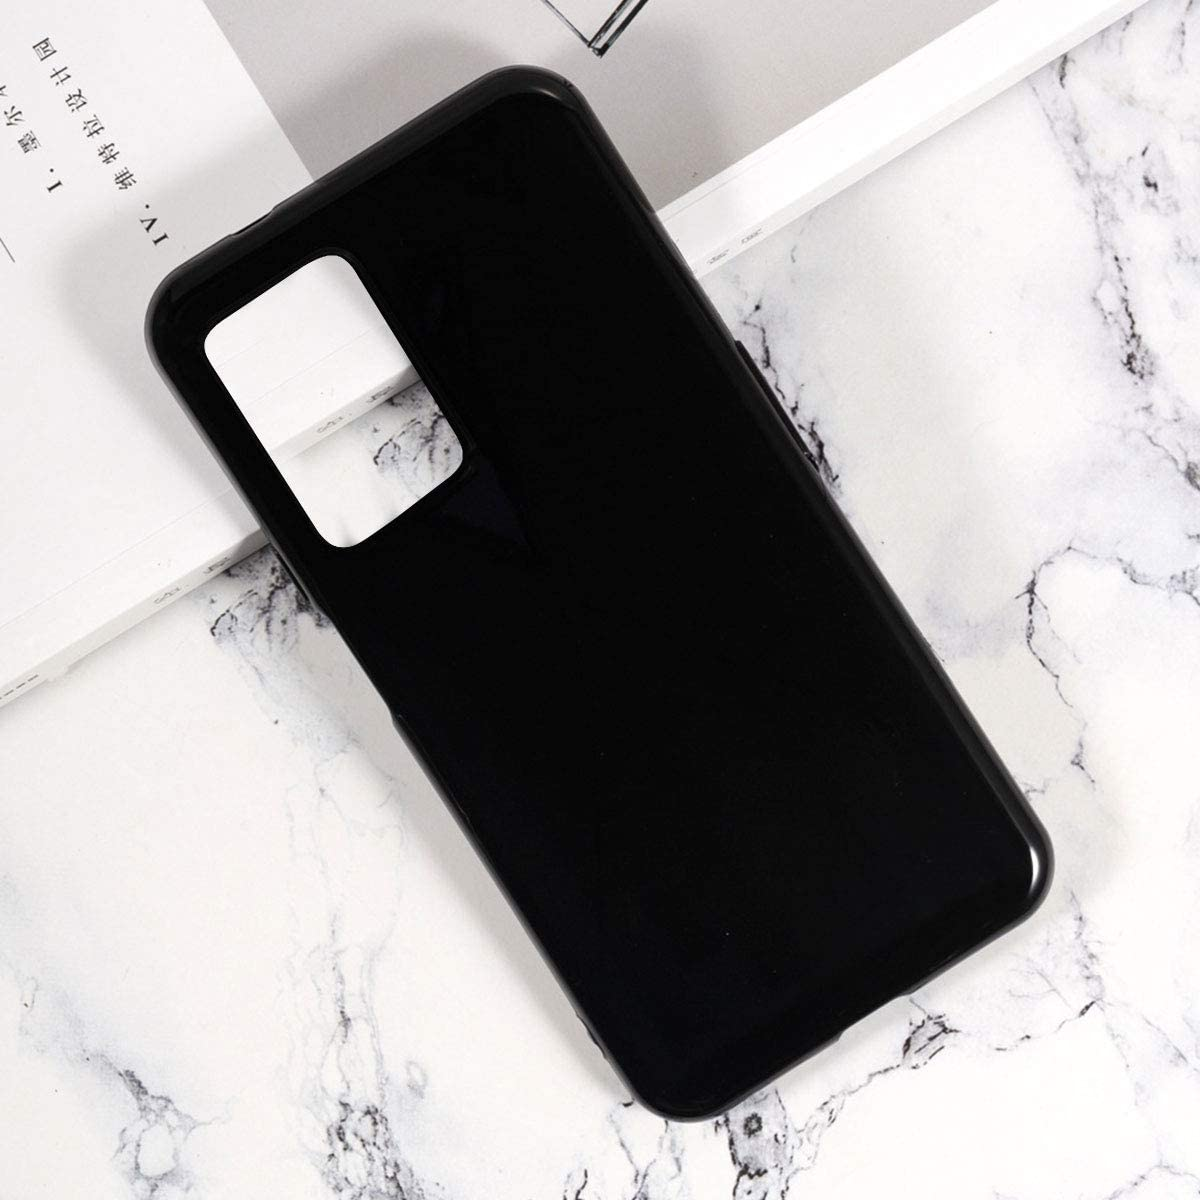 Tempered Film Glass Screen Protector LJSM Case for Cubot X30 + Black Silicone Soft TPU Cover Shell for Cubot X30 3 Pieces 6.4